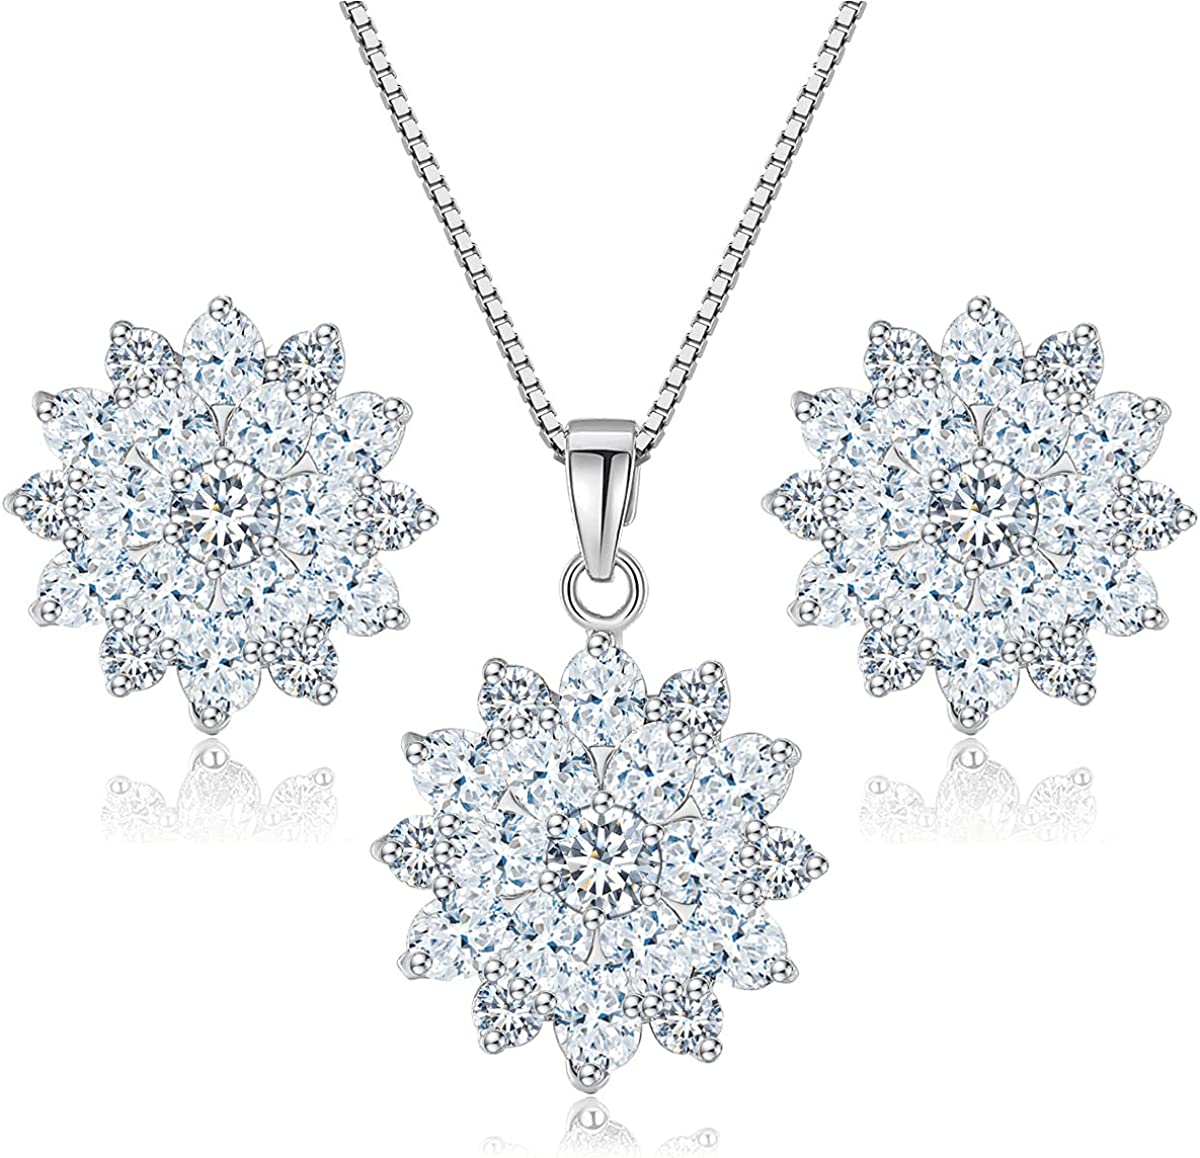 MissDaisy- Flower Necklace Earrings Set for Women Rose-Gold/White Gold Plated Hypoallergenic Jewelry Sets Wedding Party, Bridal and Bridesmaid Accessories